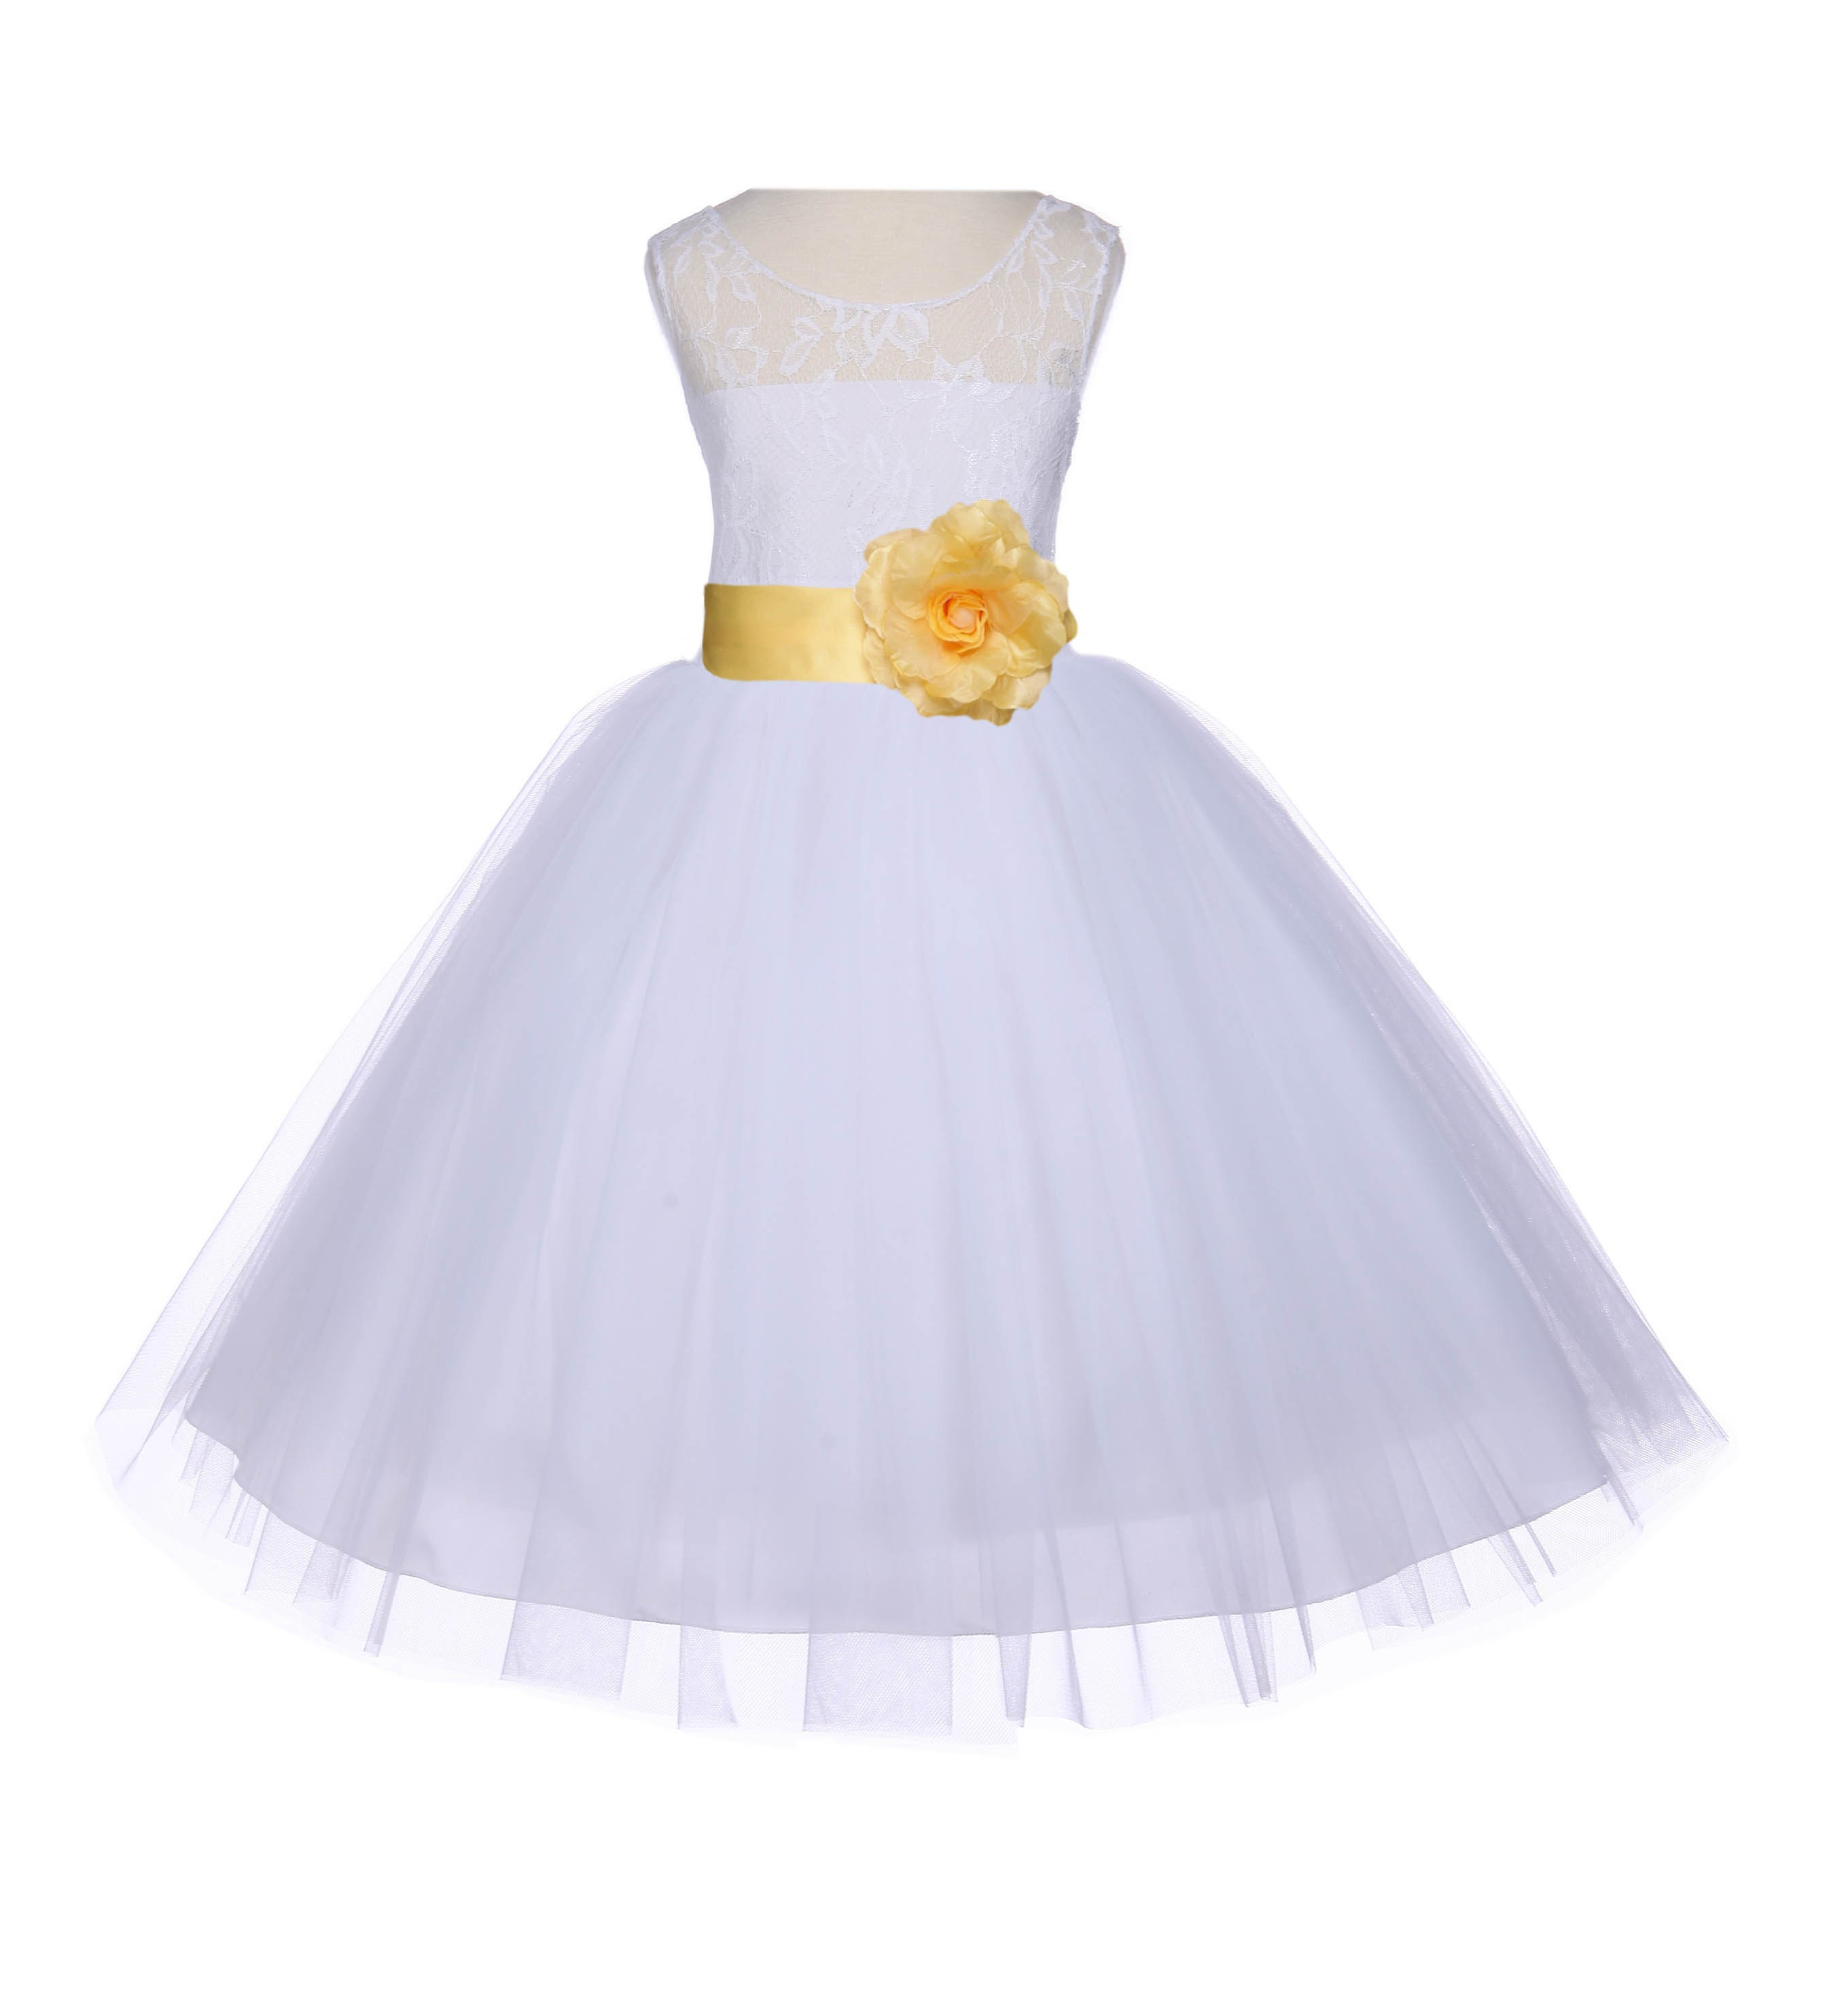 Whitecanary Floral Lace Bodice Tulle Flower Girl Dress Wedding 153s